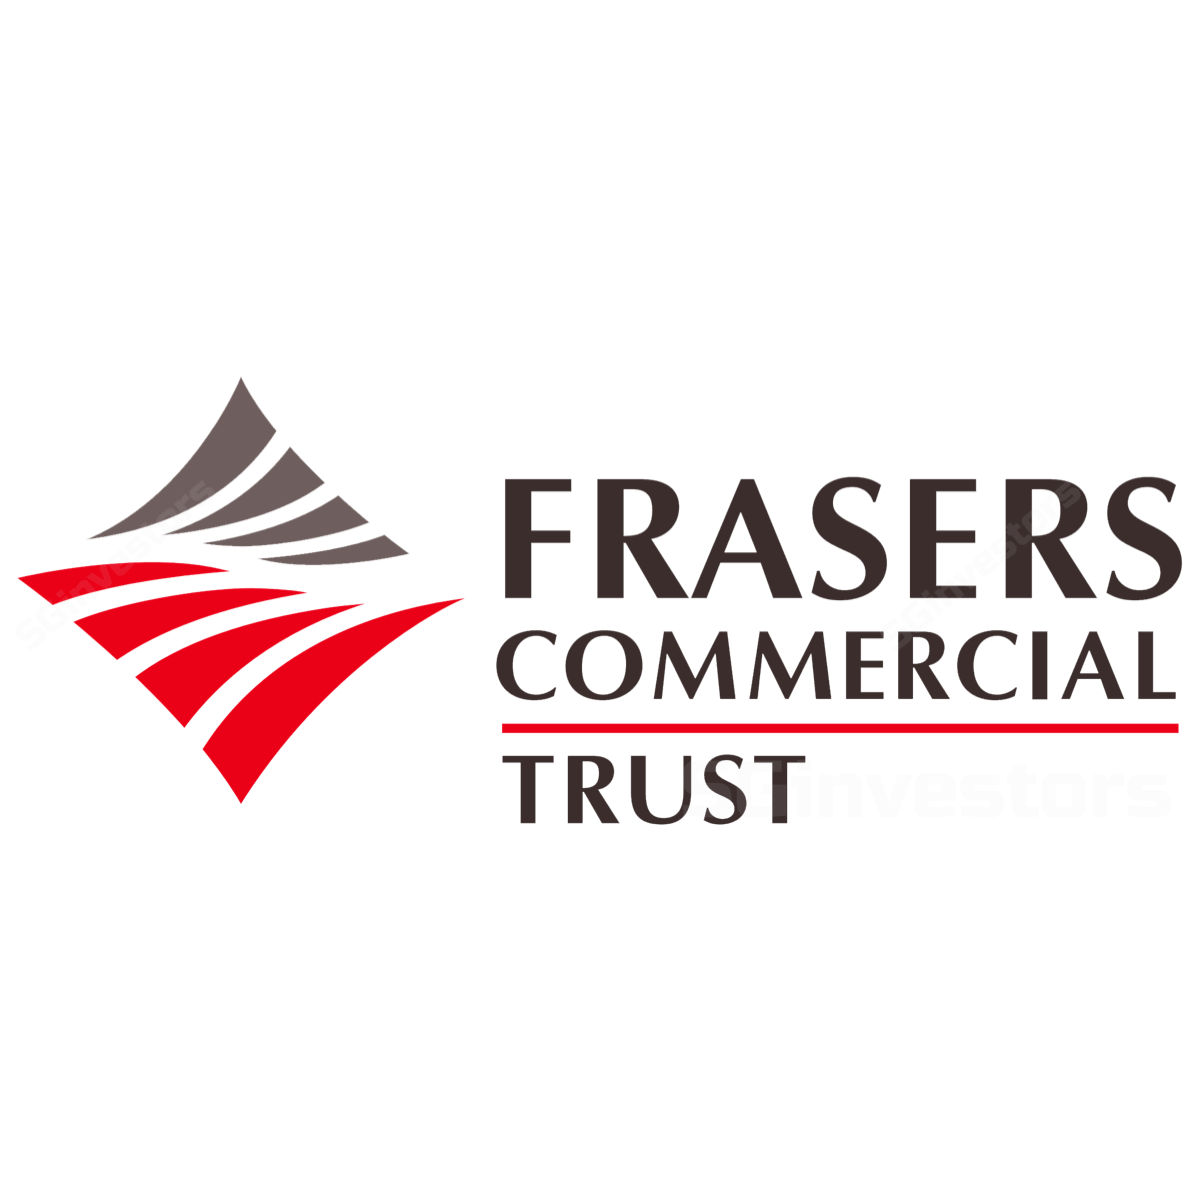 Frasers Commercial Trust - OCBC Investment 2017-03-14: Uncertainties likely priced in